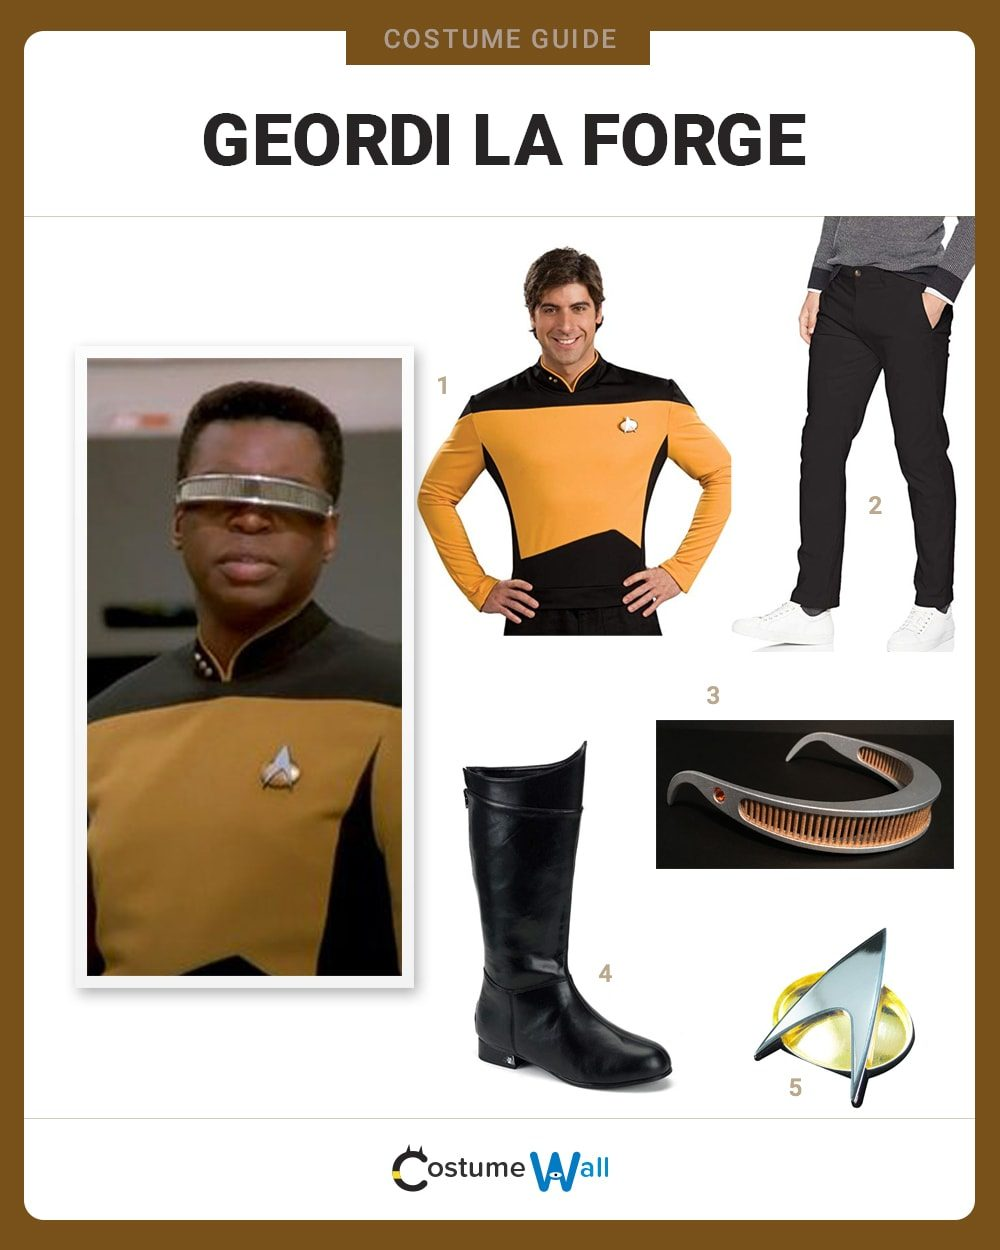 Geordi La Forge Costume Guide